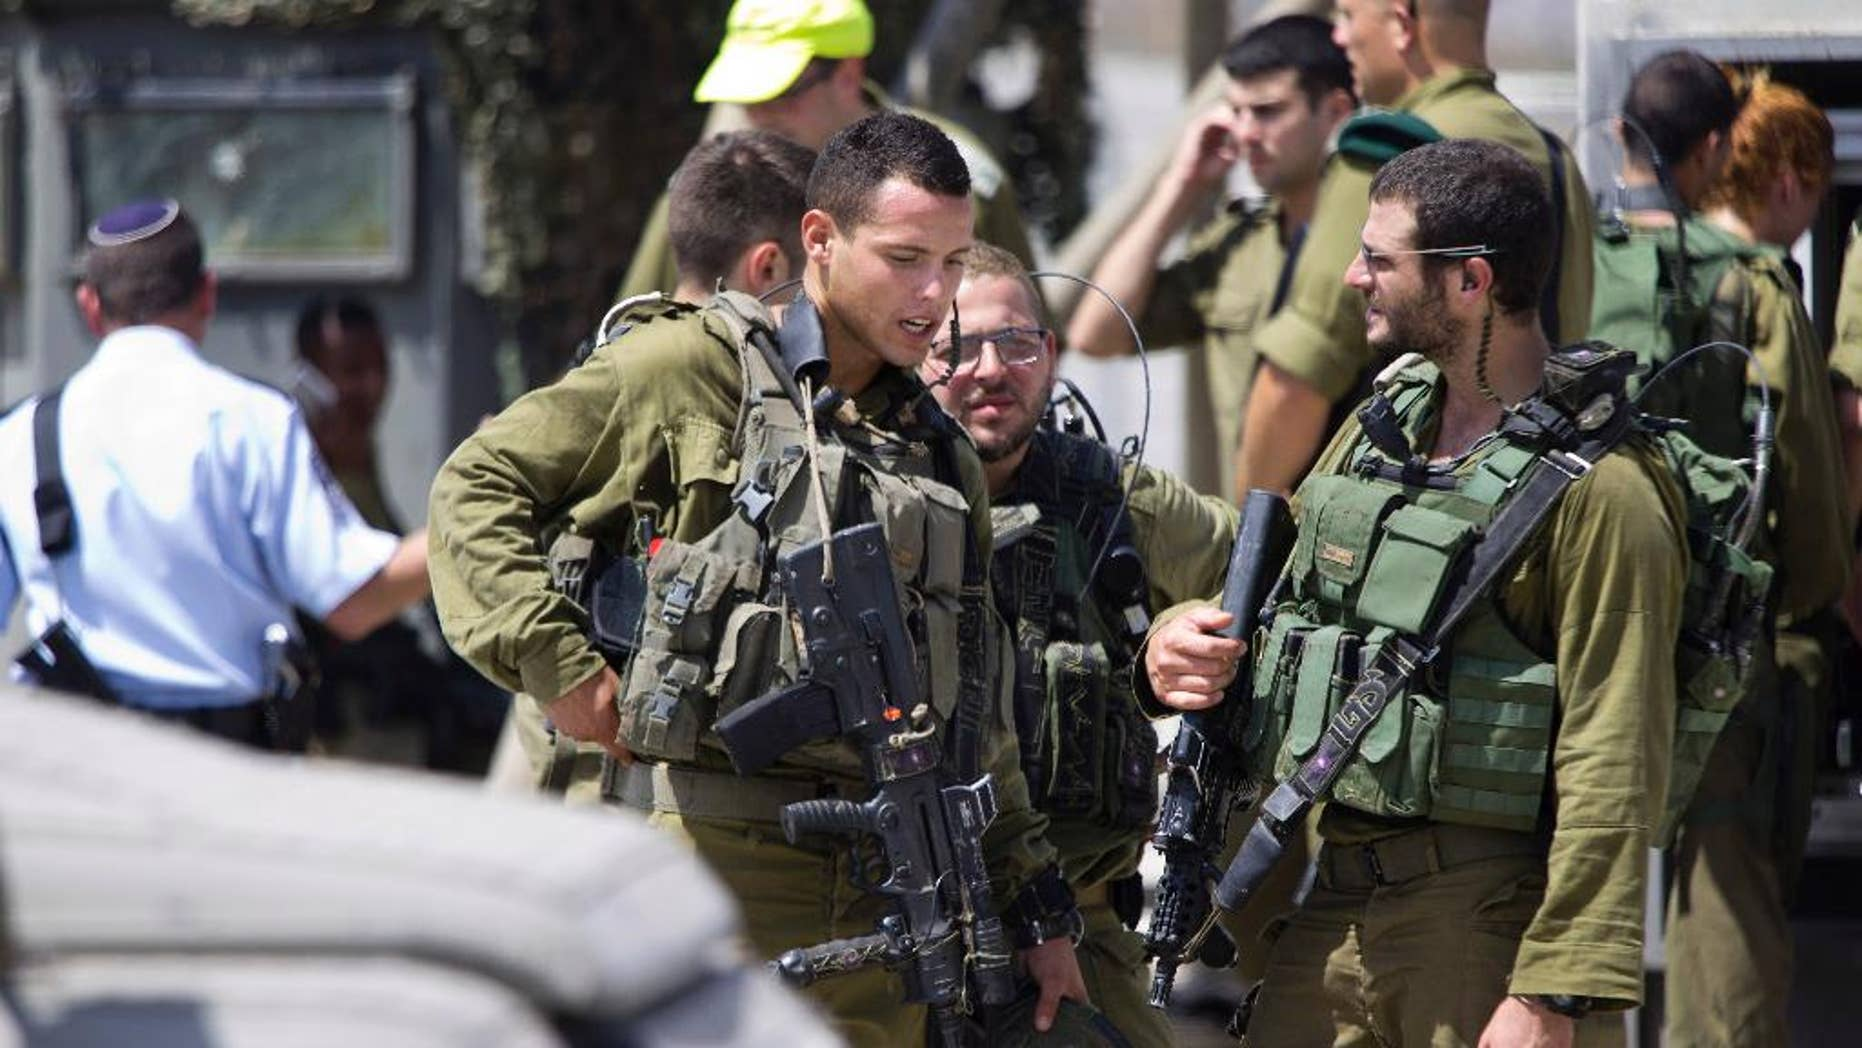 Aug. 17, 2015: Israeli soldiers stand guard at a checkpoint near the West Bank of Nablus. Israel authorities say troops have shot and killed a Palestinian after he stabbed a guard at a West Bank checkpoint. Police spokeswoman Luba Samri says the man approached border police officers manning a checkpoint on Monday and told them he felt unwell.